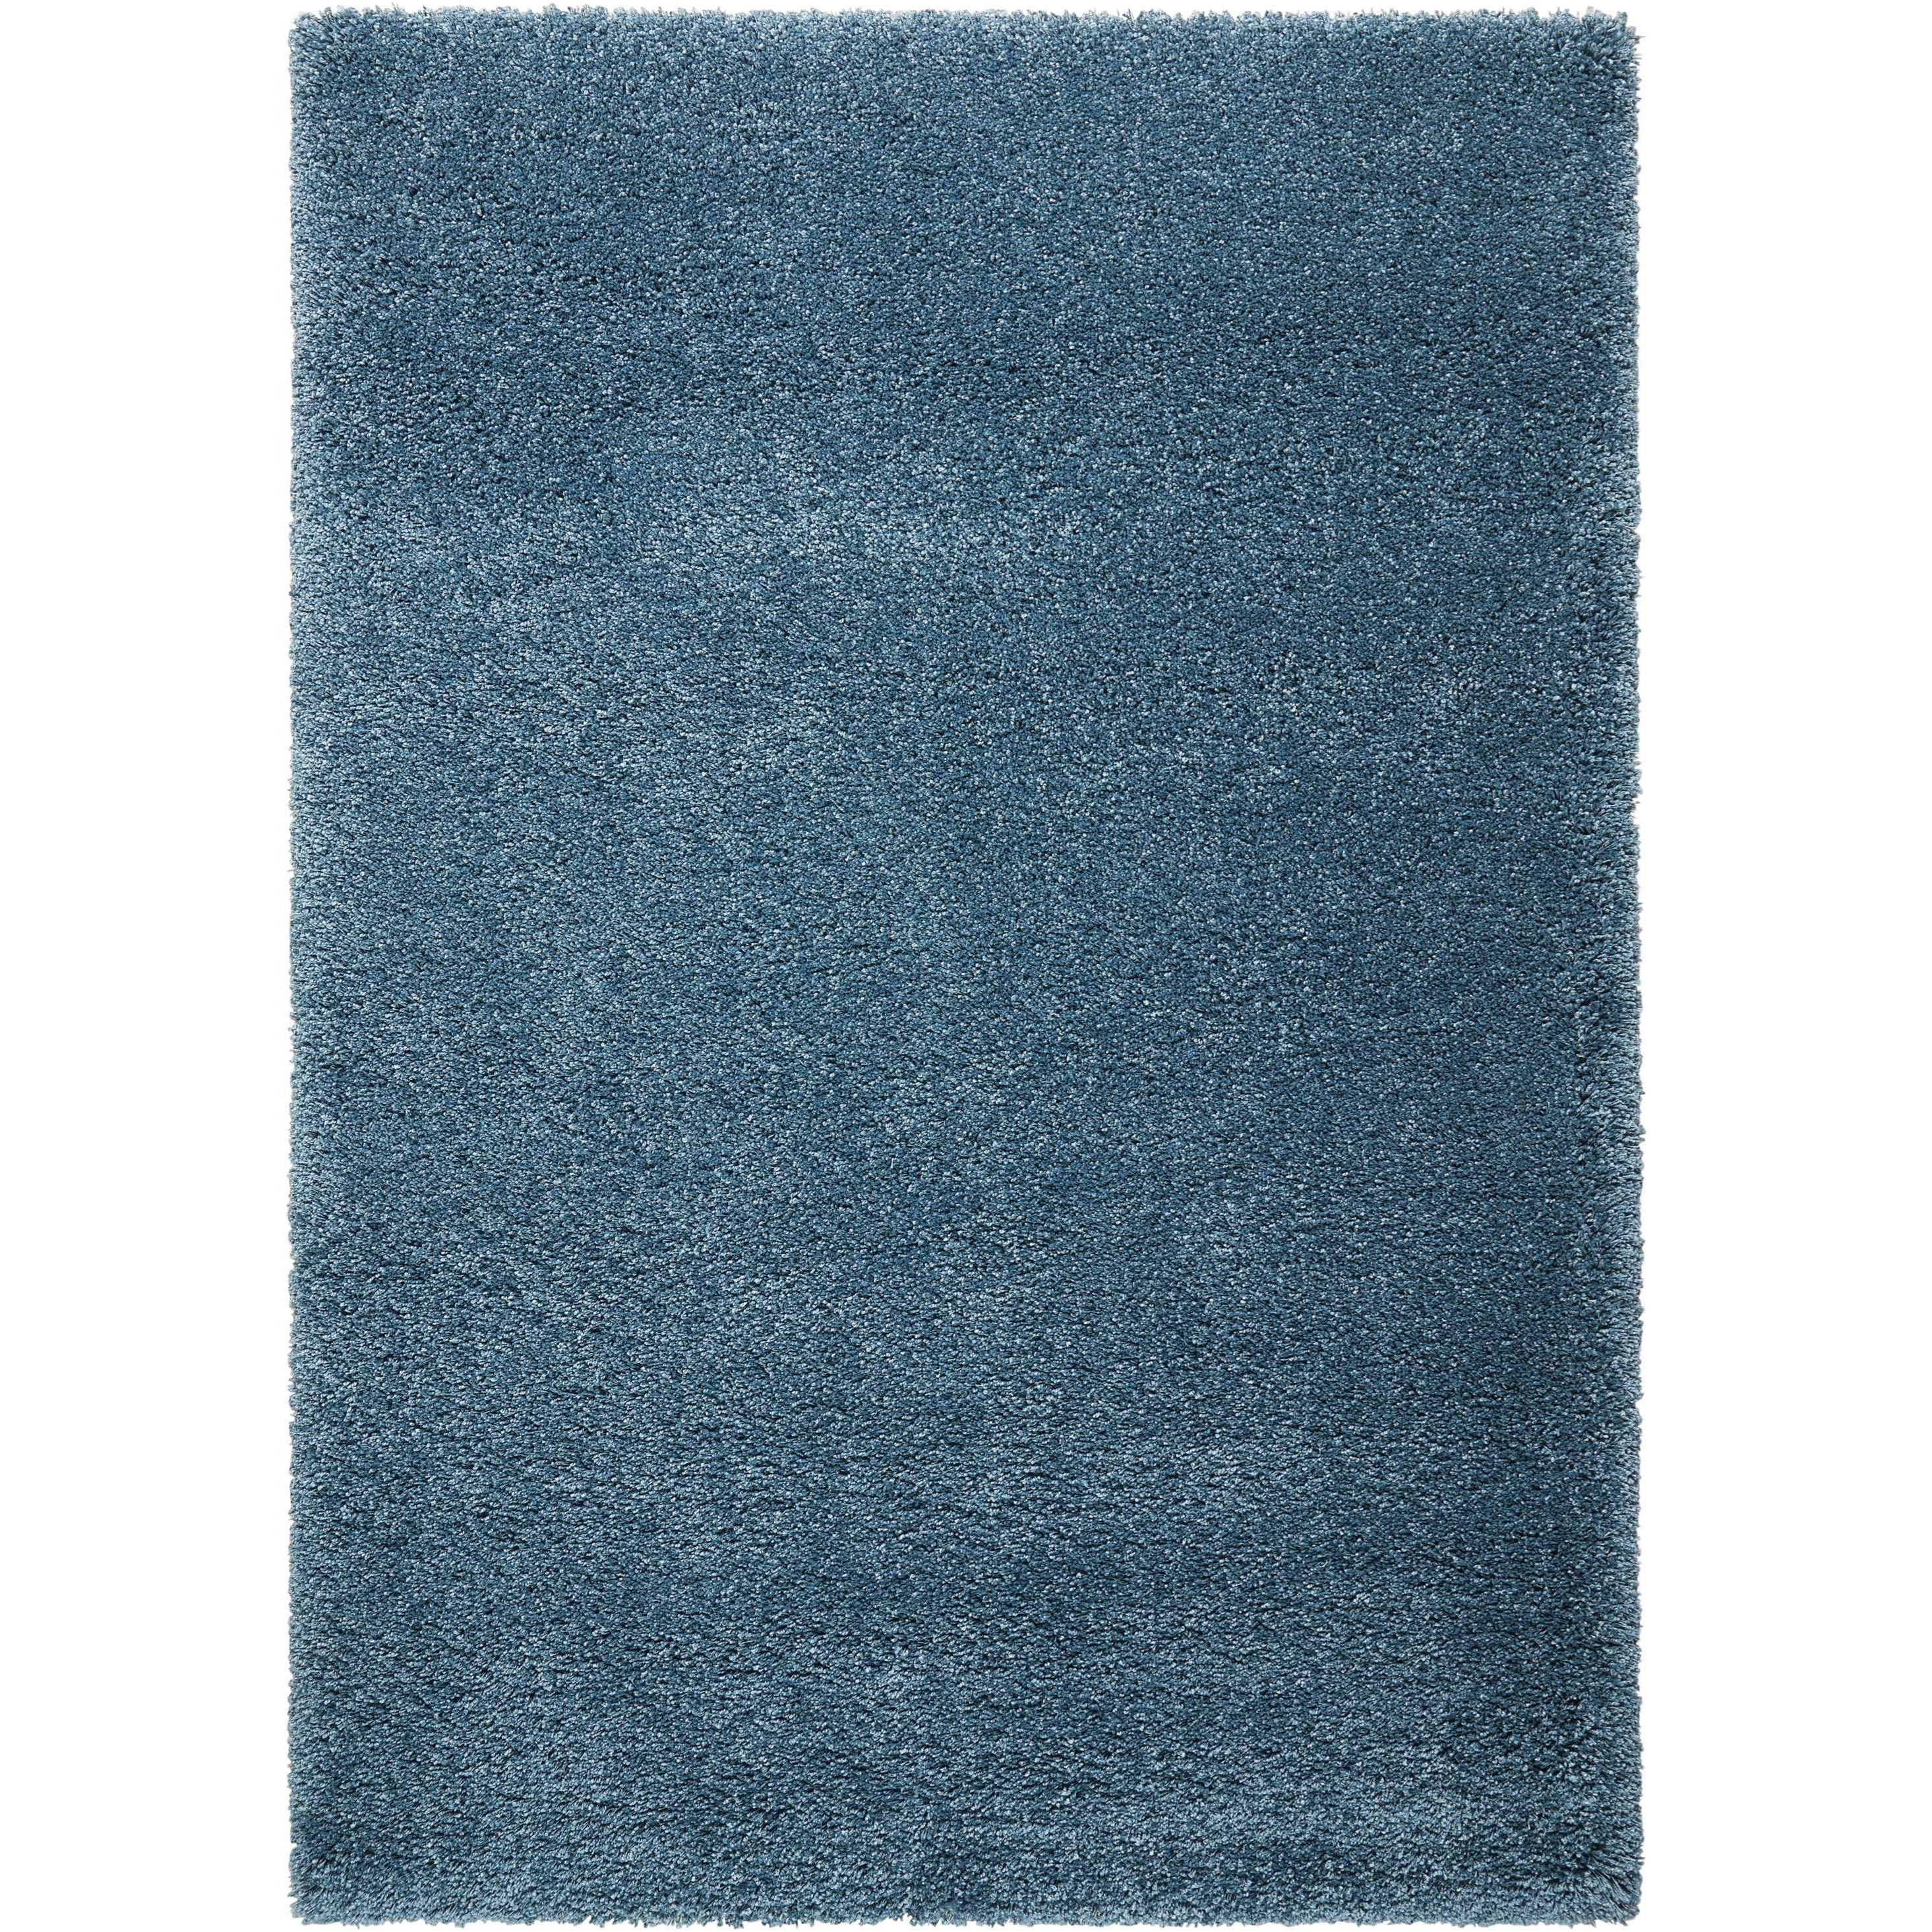 Amore Amore AMOR1 Blue 8'x11'   Rug by Nourison at Home Collections Furniture